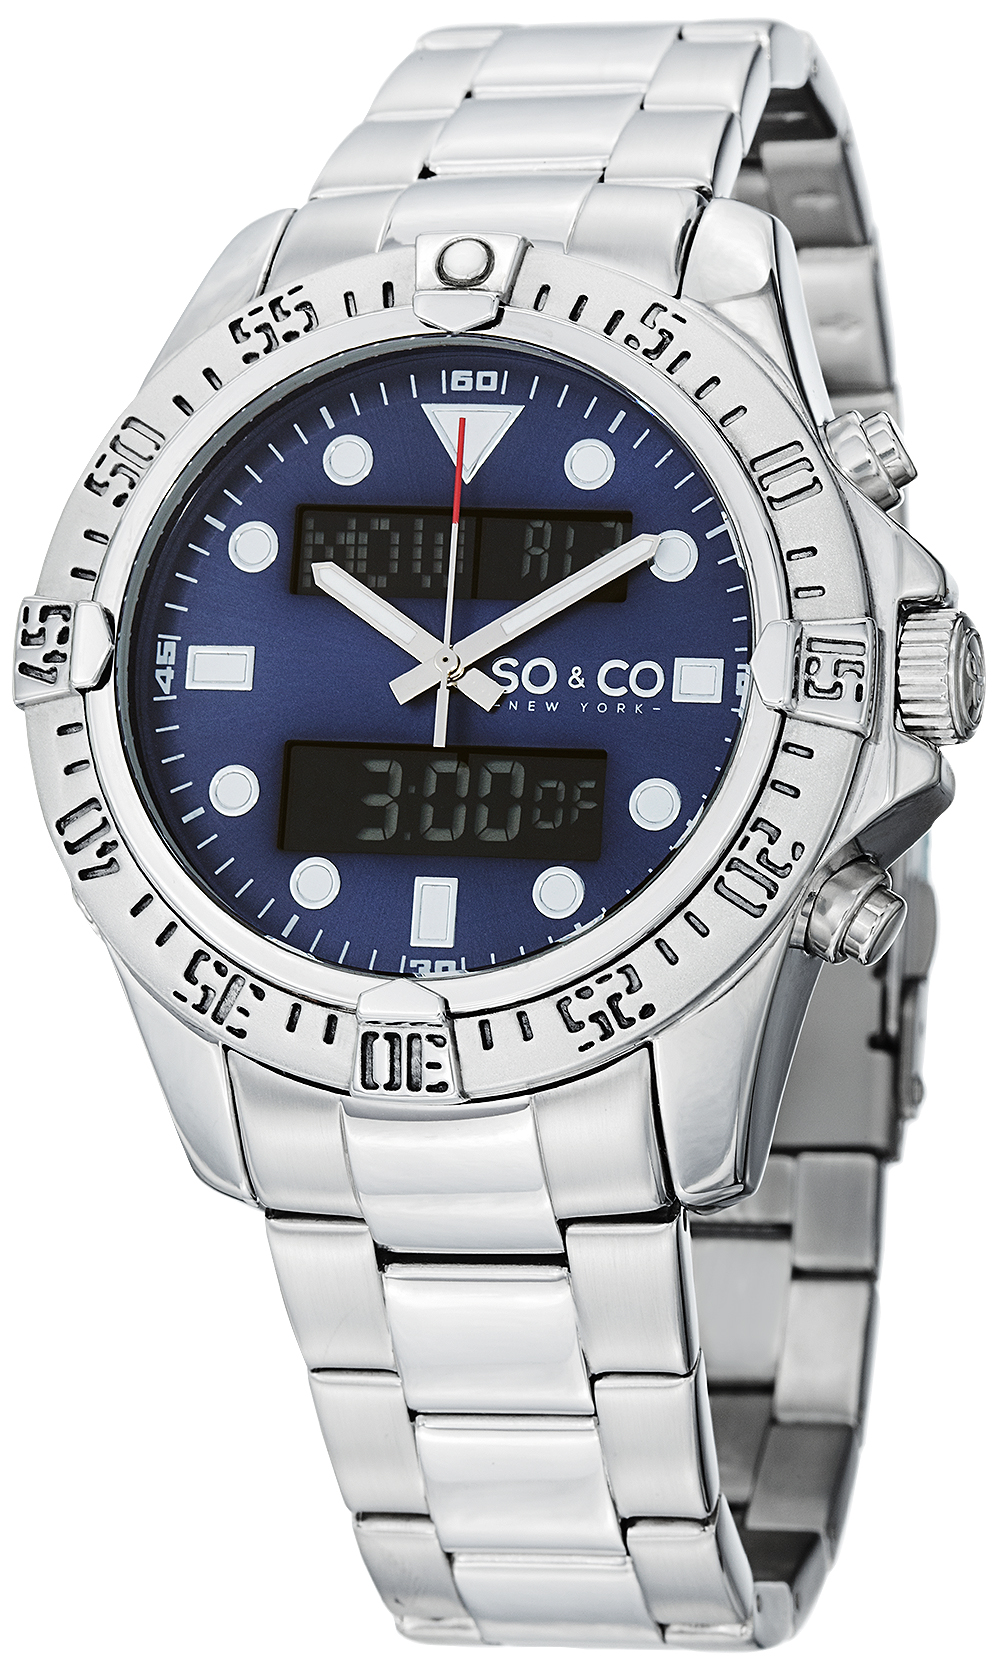 So & Co New York Yacht Timer Herrklocka 5017.2 Blå/Stål Ø44 mm